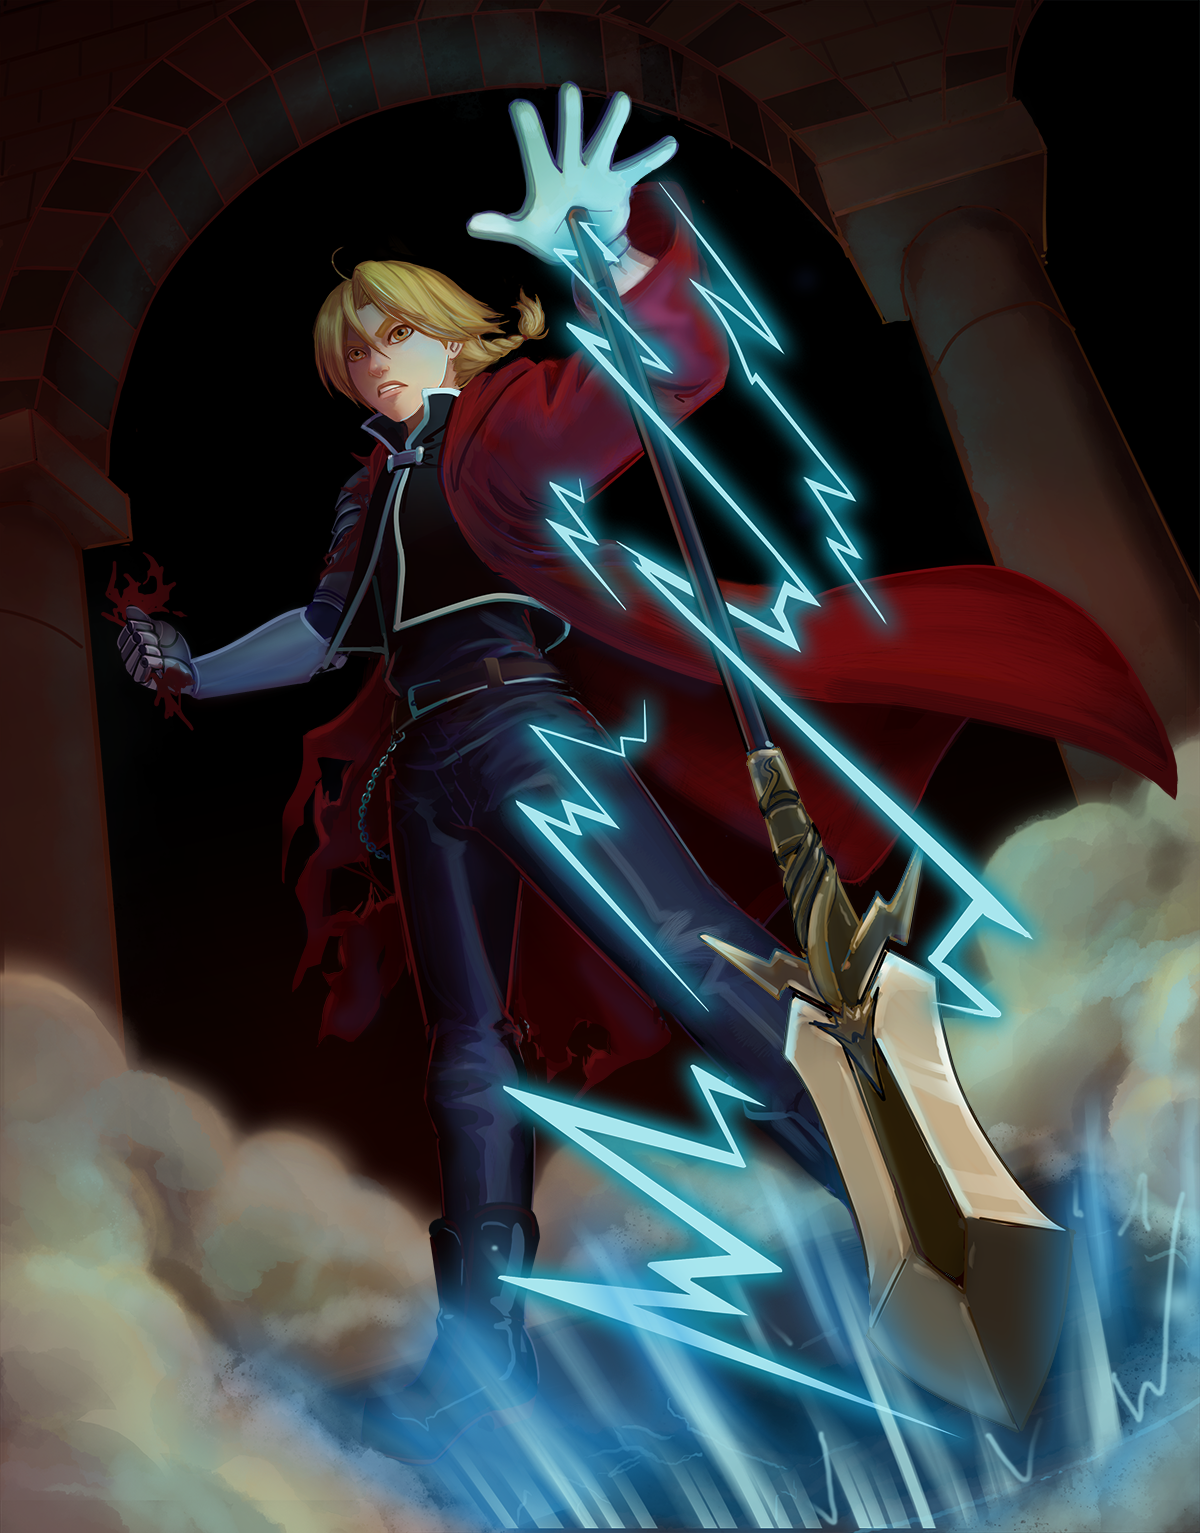 Knight of Wands- Edward Elric